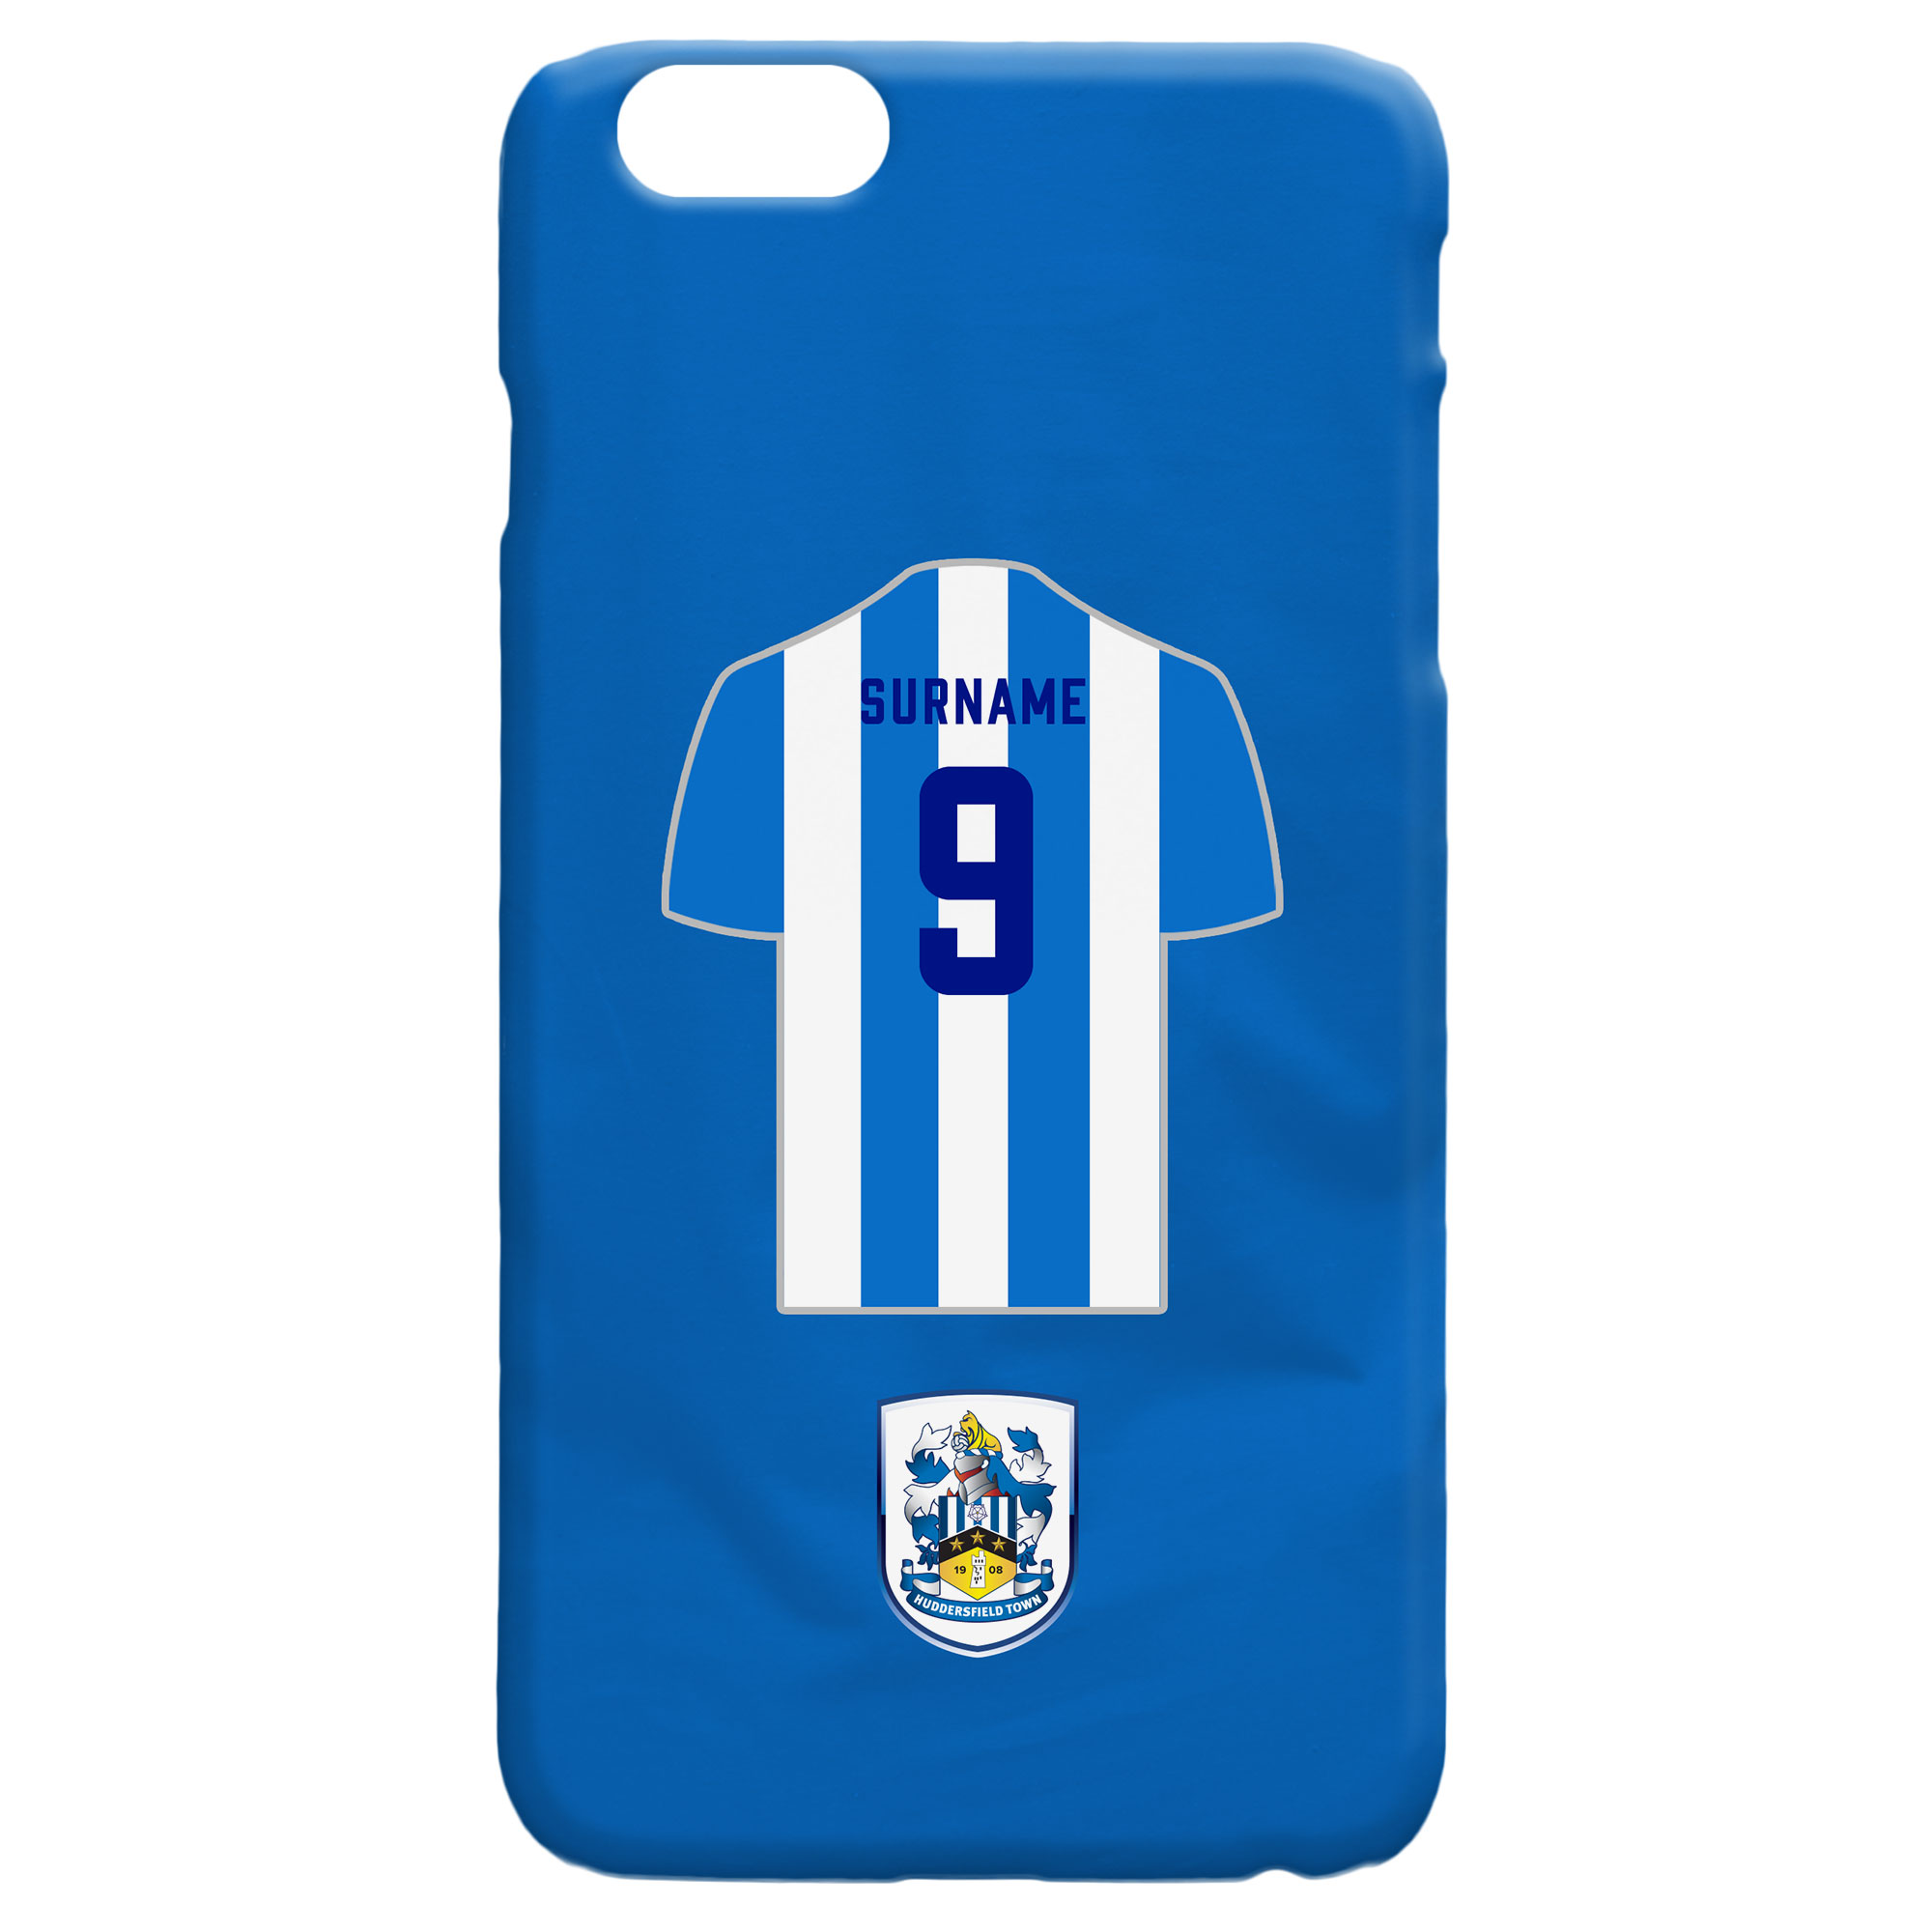 Huddersfield Town Shirt Hard Back Phone Case